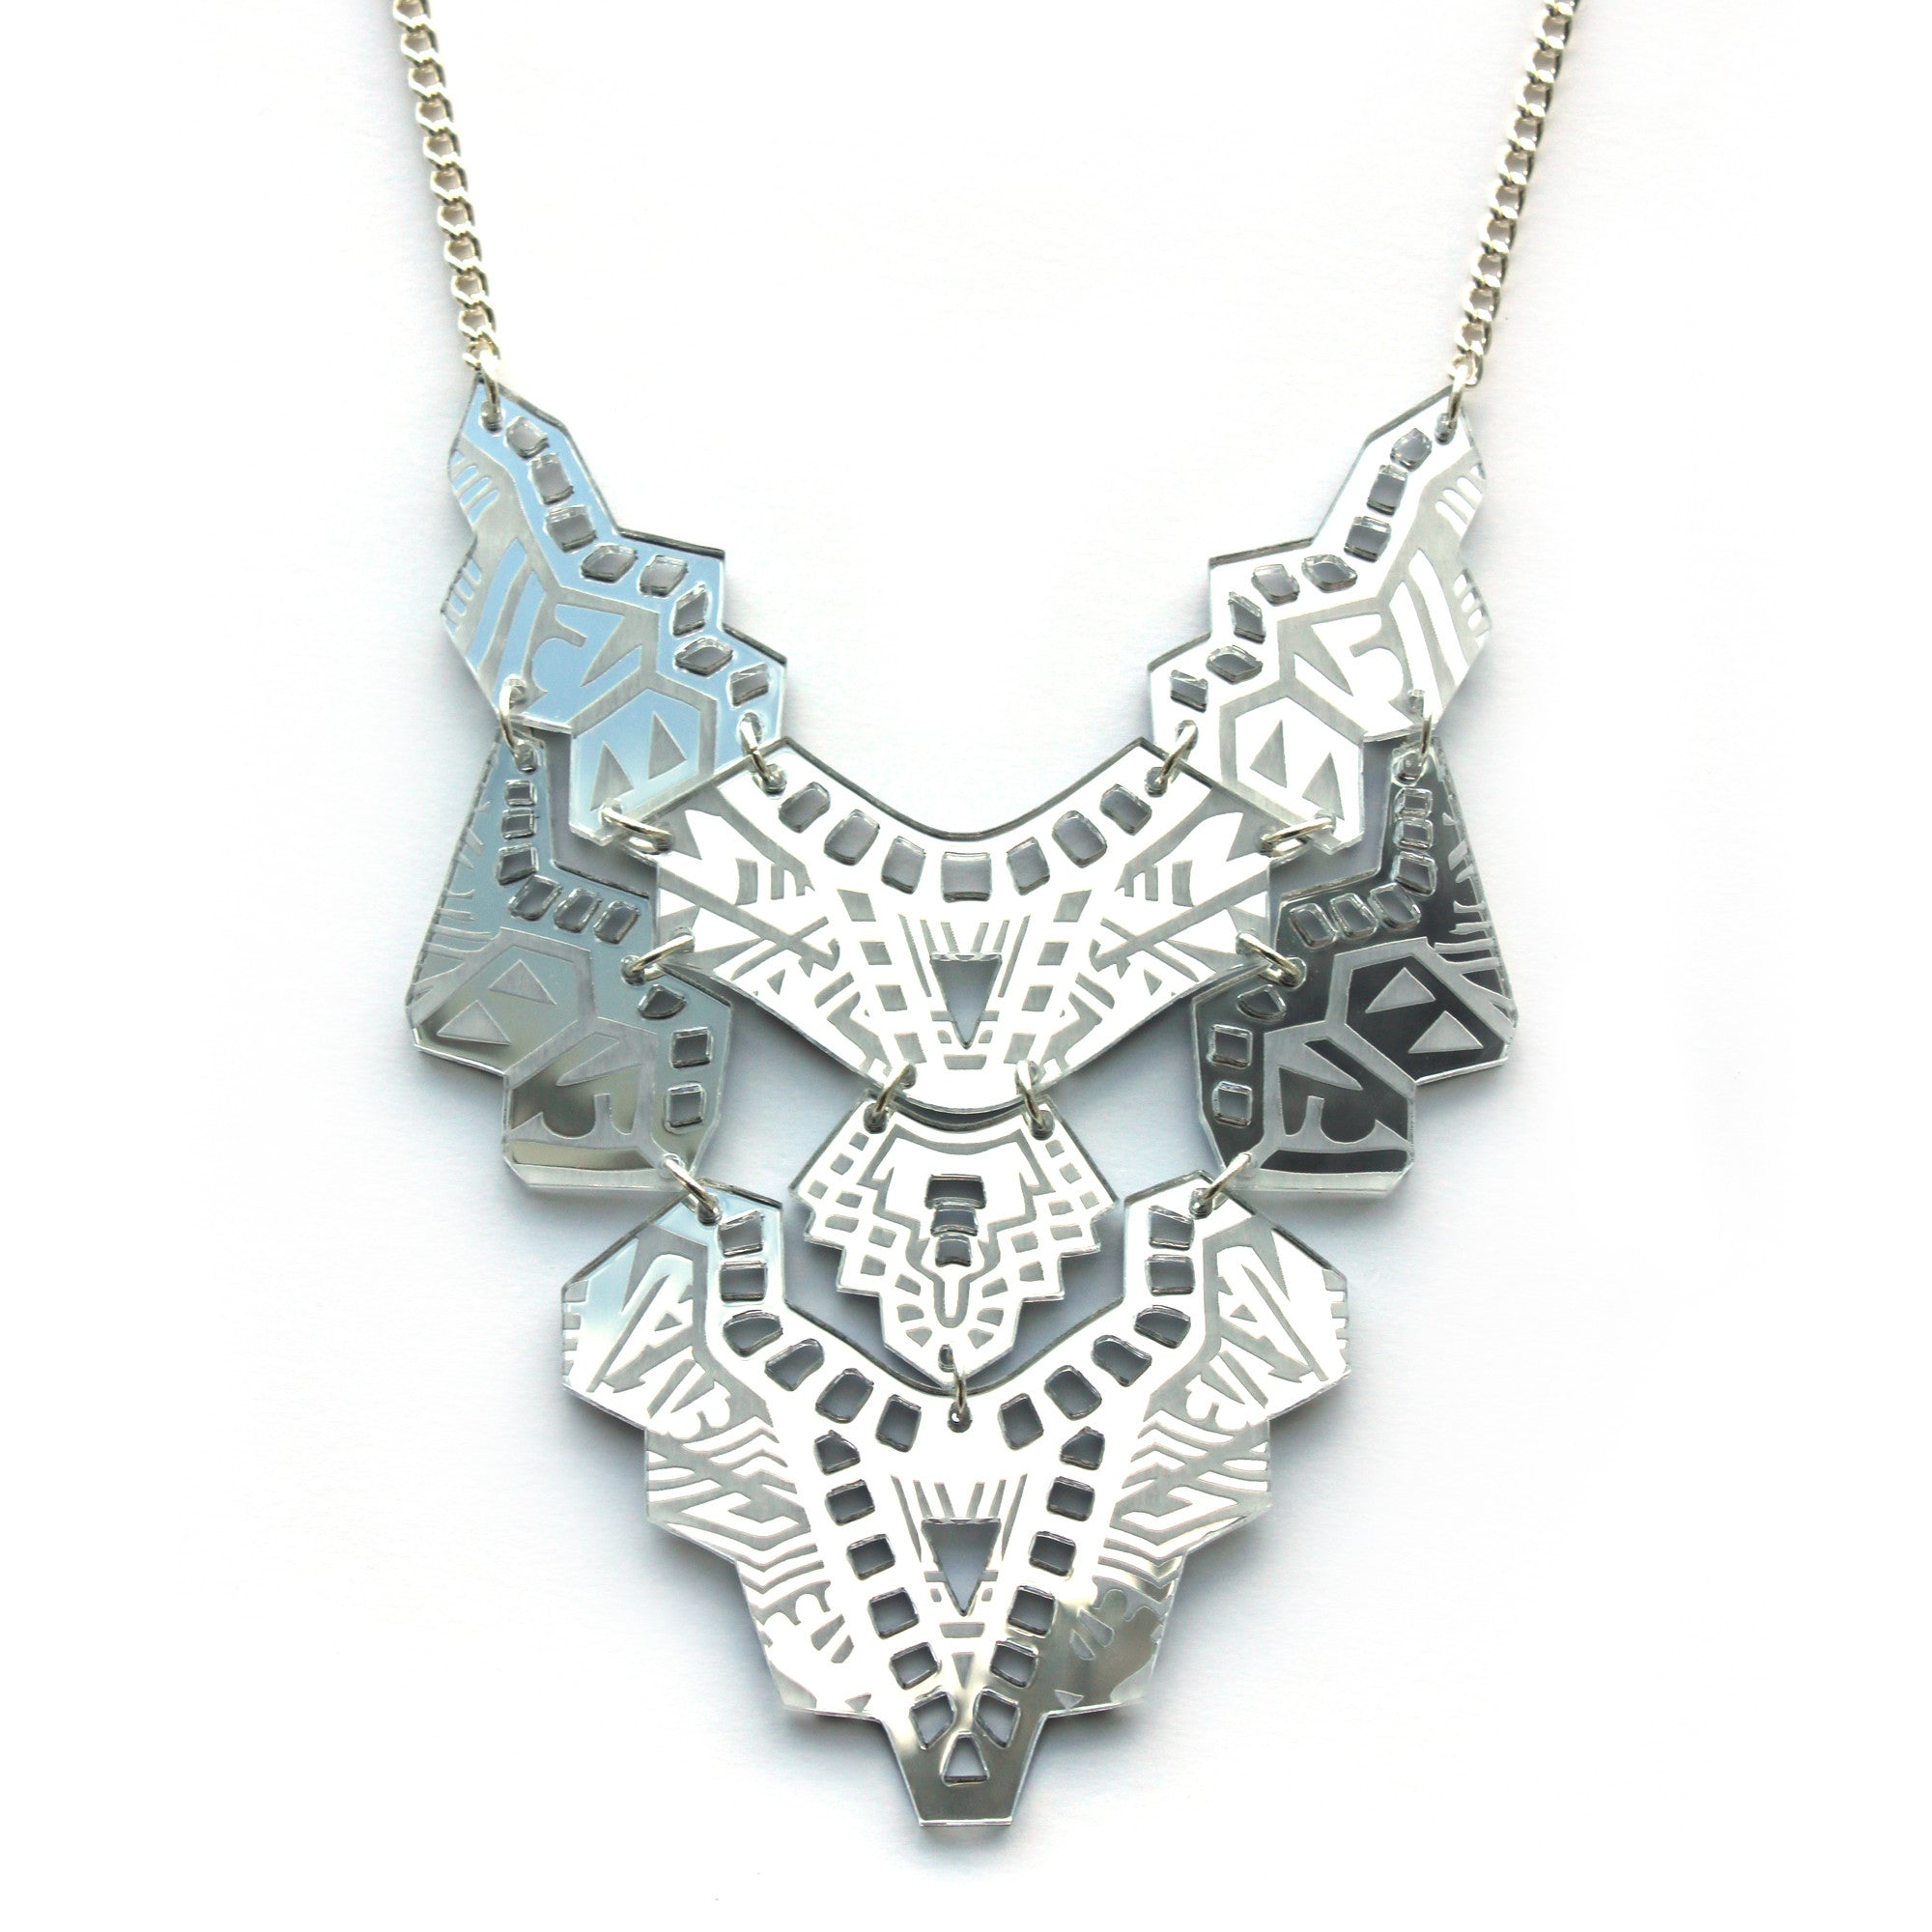 Kindred Necklace